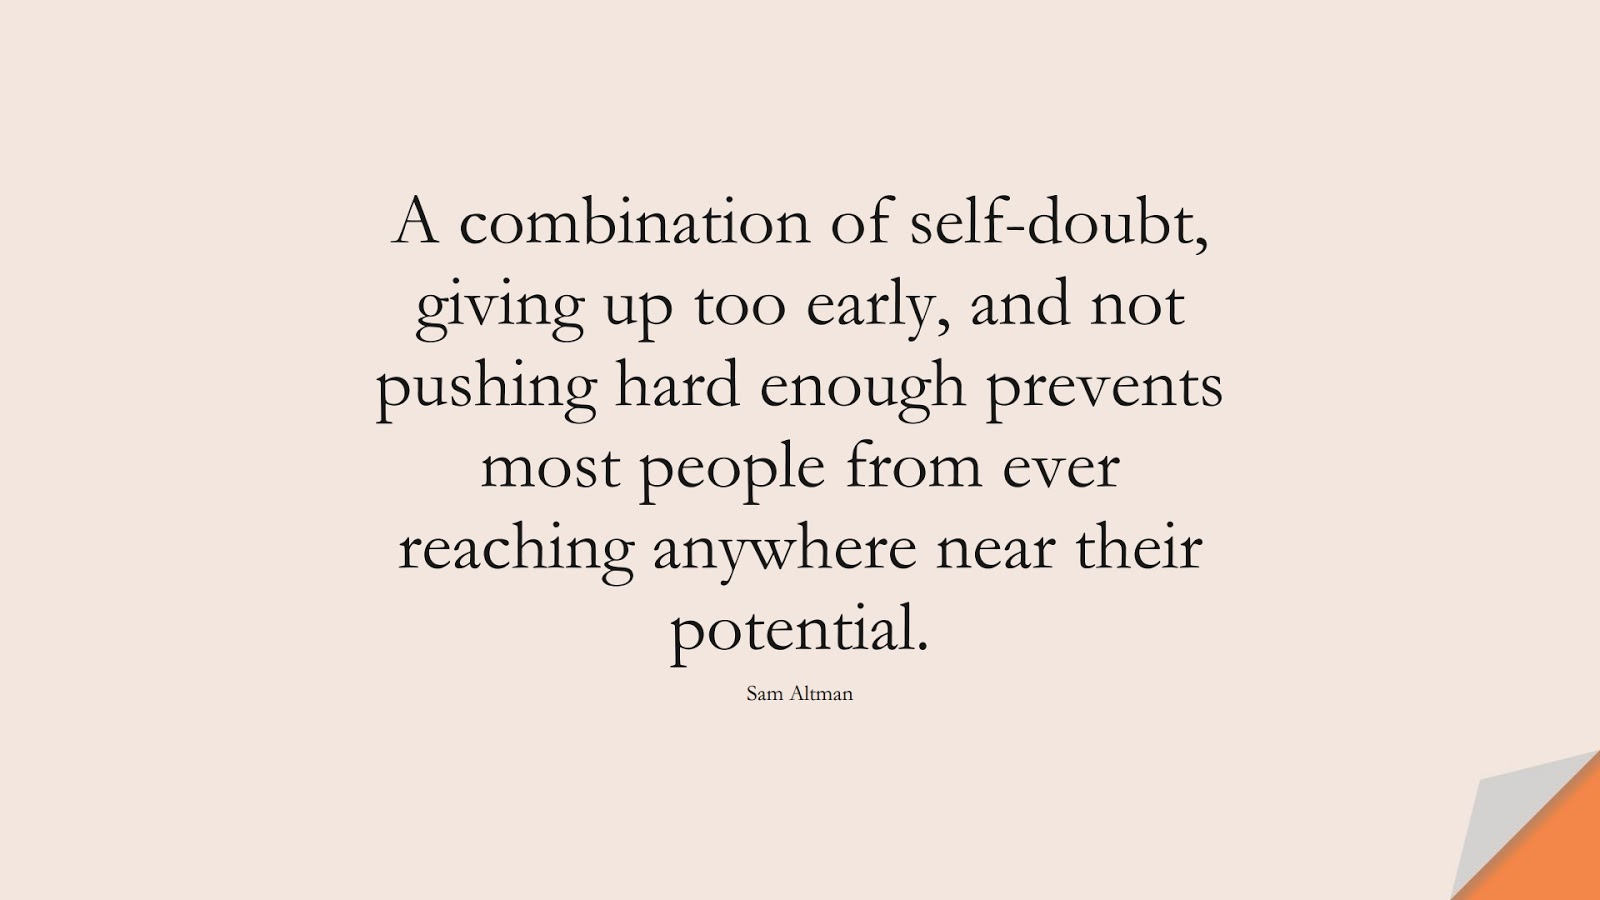 A combination of self-doubt, giving up too early, and not pushing hard enough prevents most people from ever reaching anywhere near their potential. (Sam Altman);  #SelfEsteemQuotes